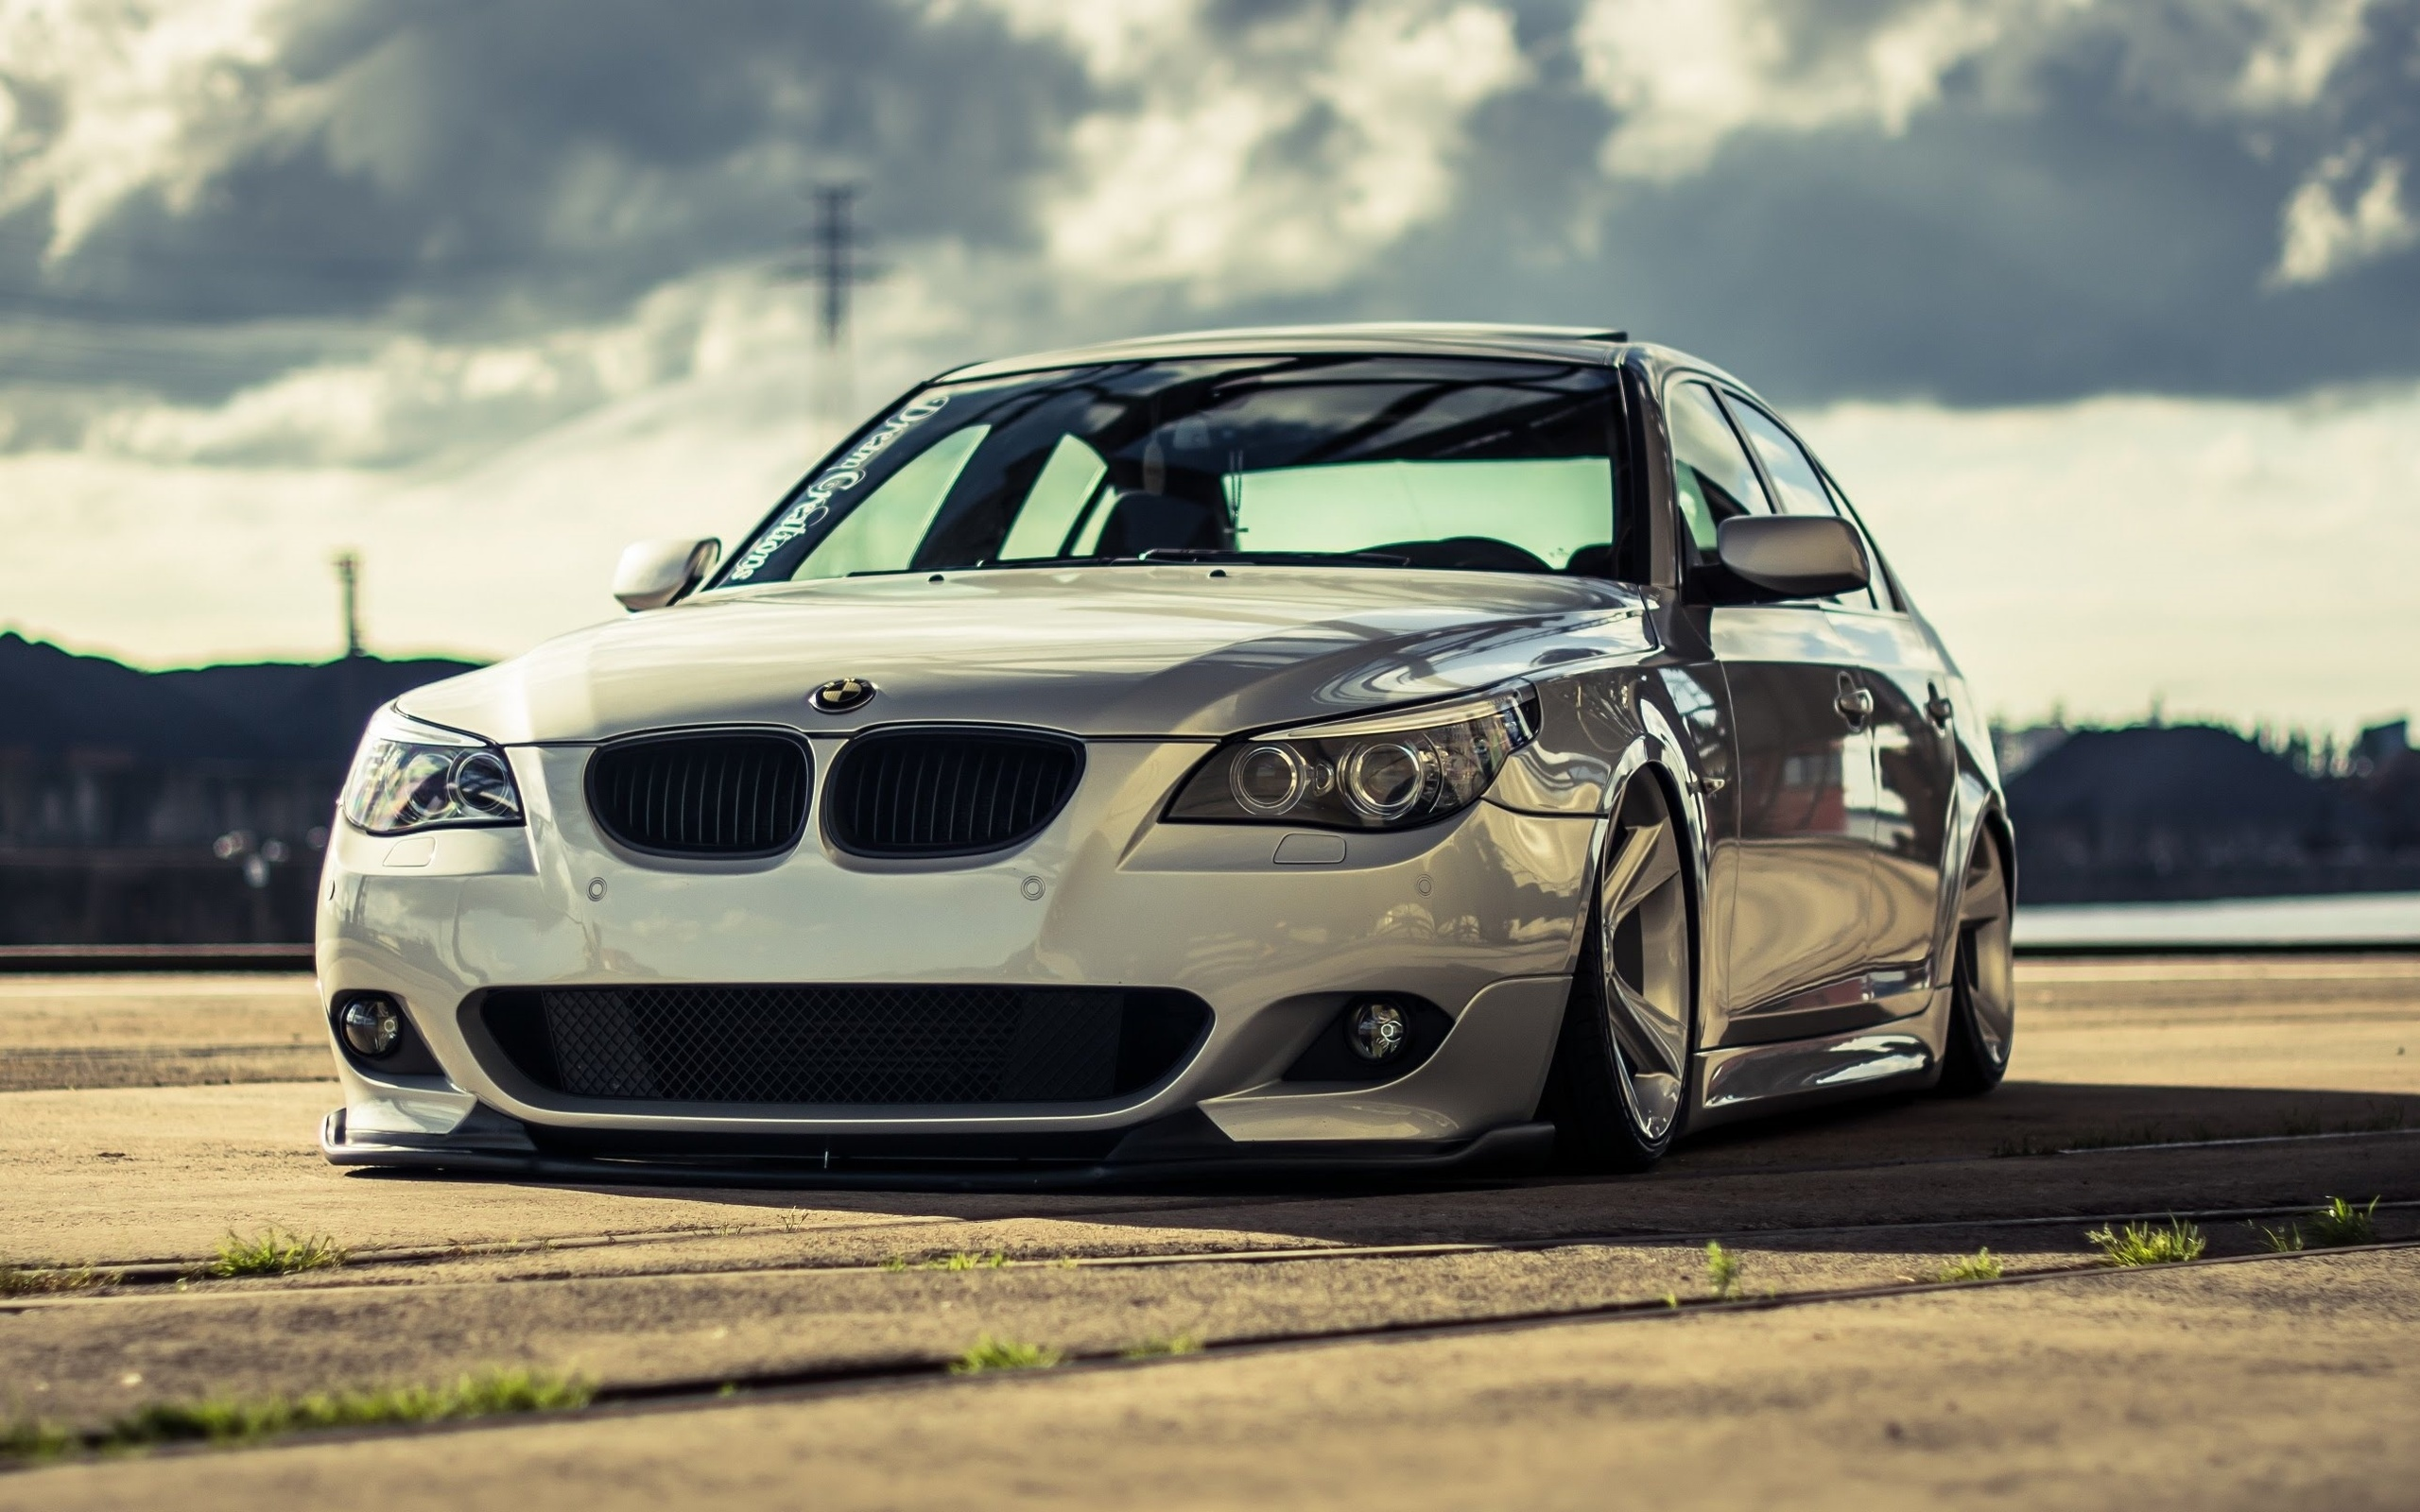 Tuning Bmw M5 E60 Low Rider E60 Stance Parking Bmw M5 E60 Stance 2560x1600 Wallpaper Teahub Io